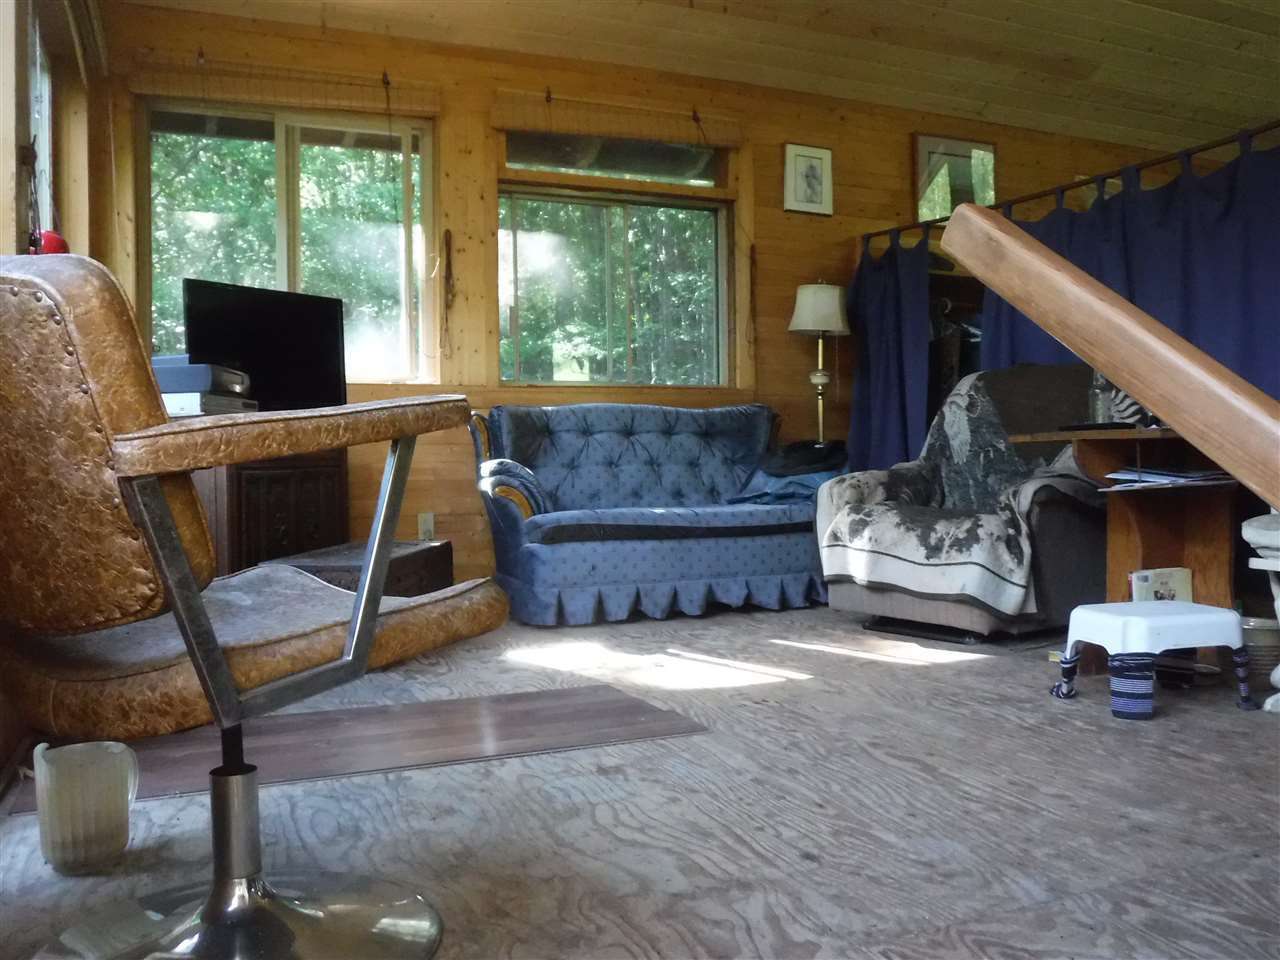 Photo 3: Photos: 3736 20 Highway in Bella Coola: Bella Coola/Hagensborg House for sale (Williams Lake (Zone 27))  : MLS®# R2376163